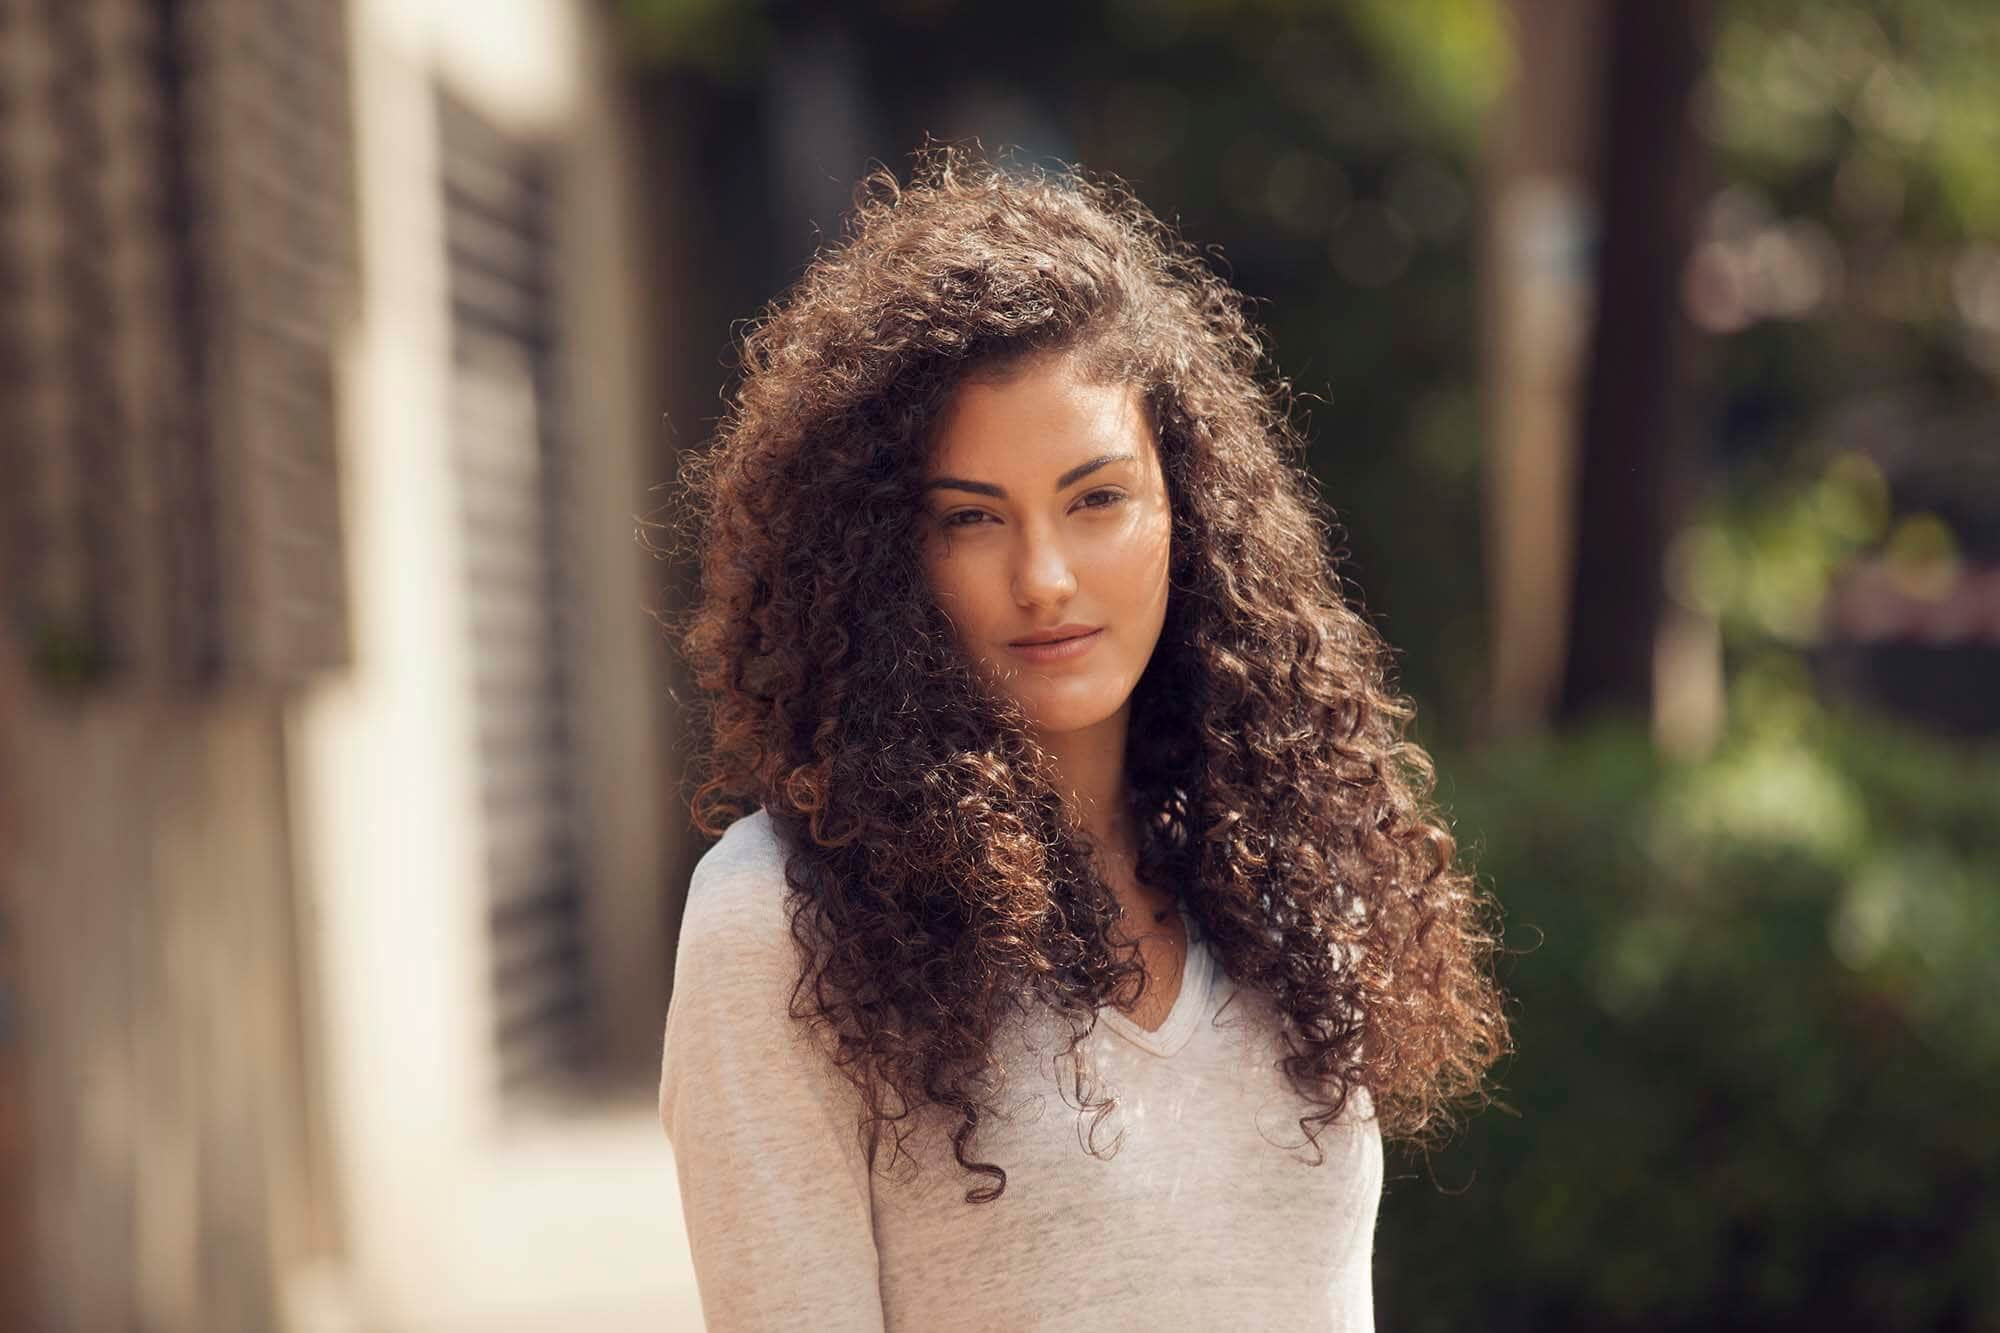 Best ideas about Easy Hairstyles For Thick Curly Hair . Save or Pin 16 Easy and Modern Hairstyles for Thick Curly Hair Now.